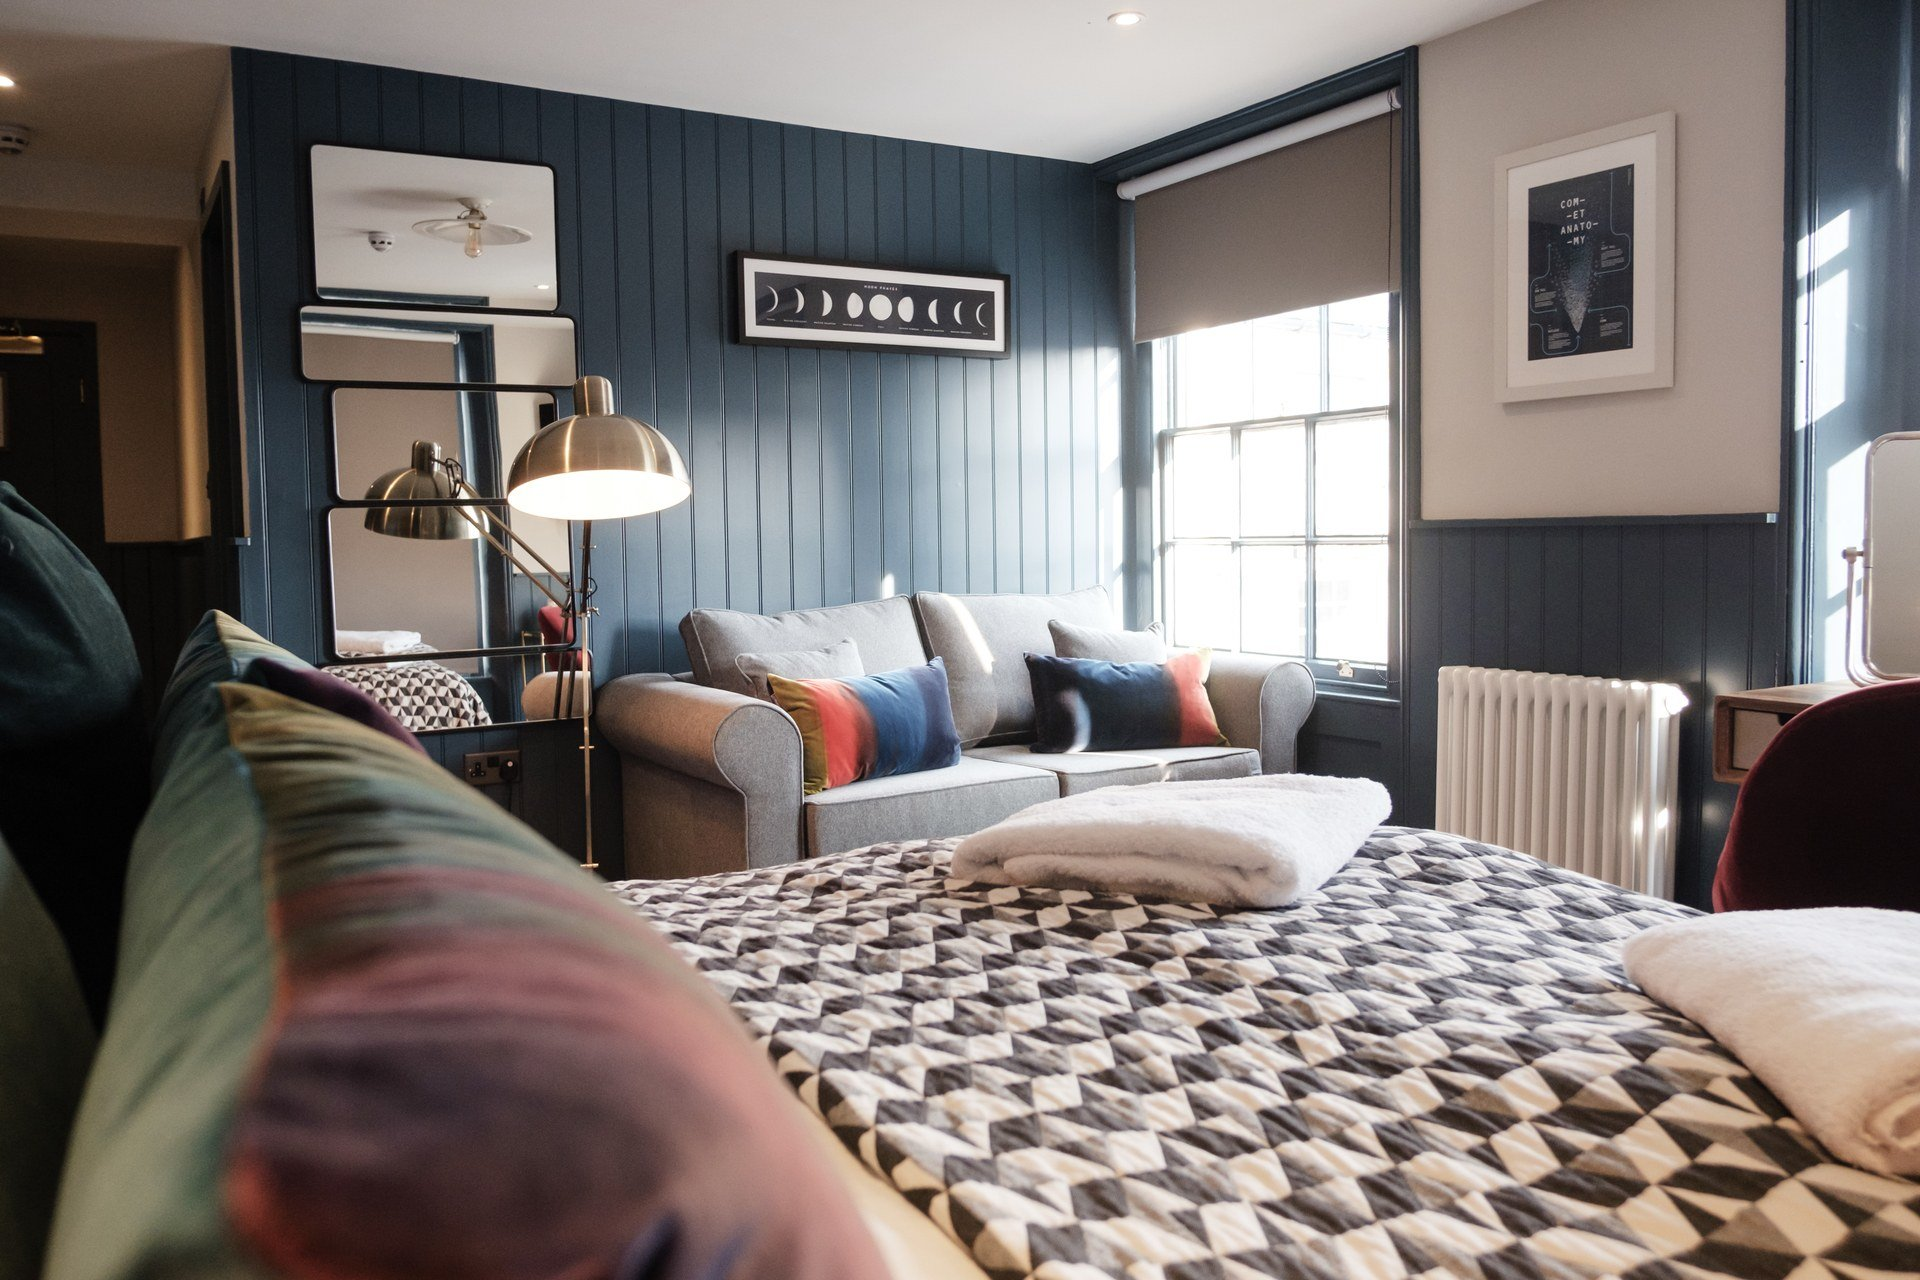 The Head of the River Restaurant, Pub & Bar Oxford - Indulgence Bedroom